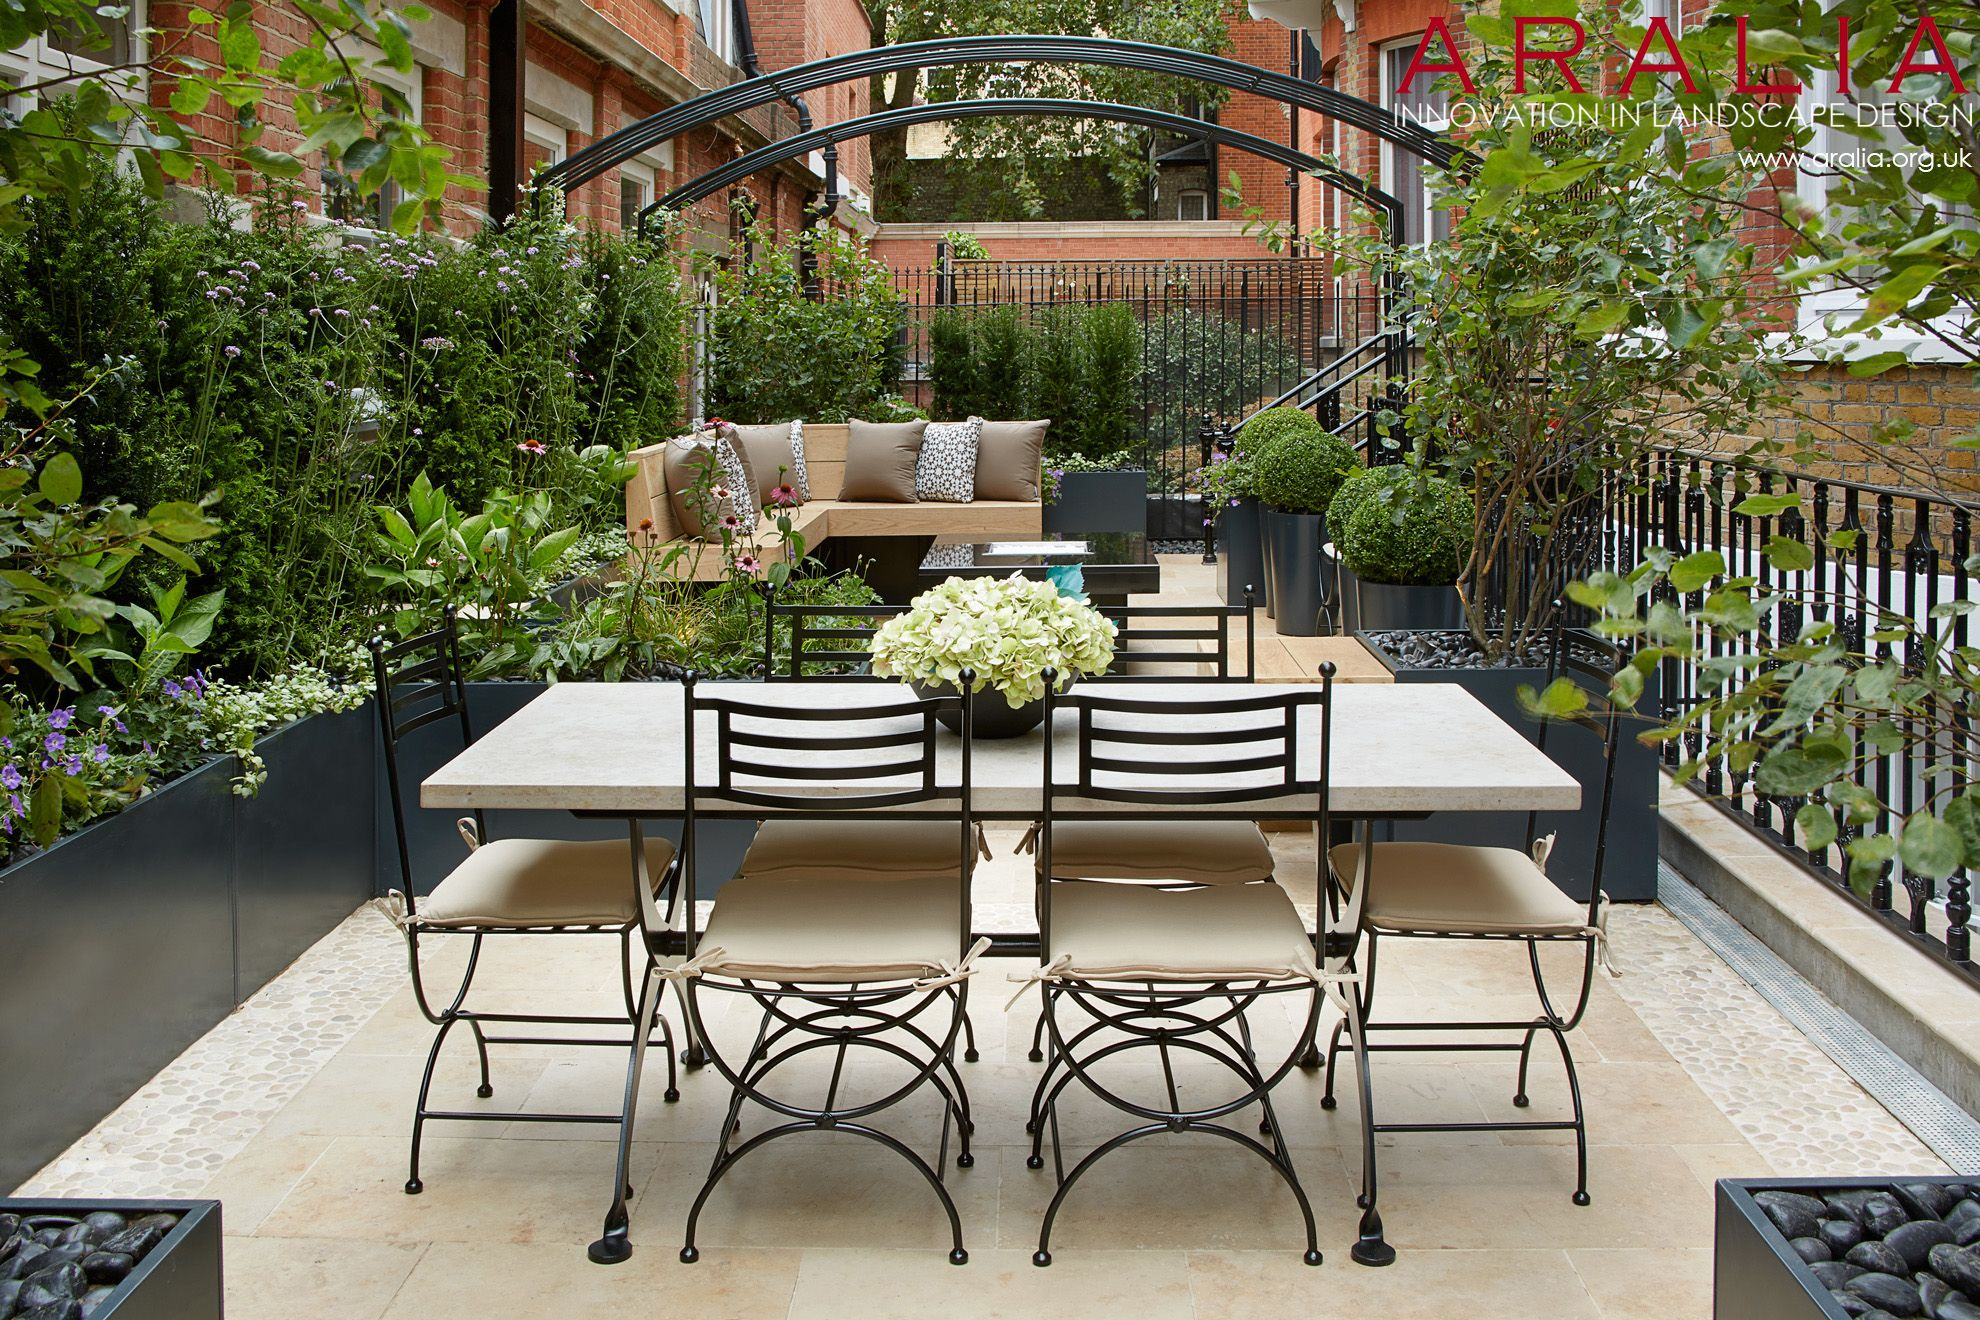 Knightsbridge Roof Terrace - Winner of the New Homes Garden Awards 2014 for  Best Roof Terrace